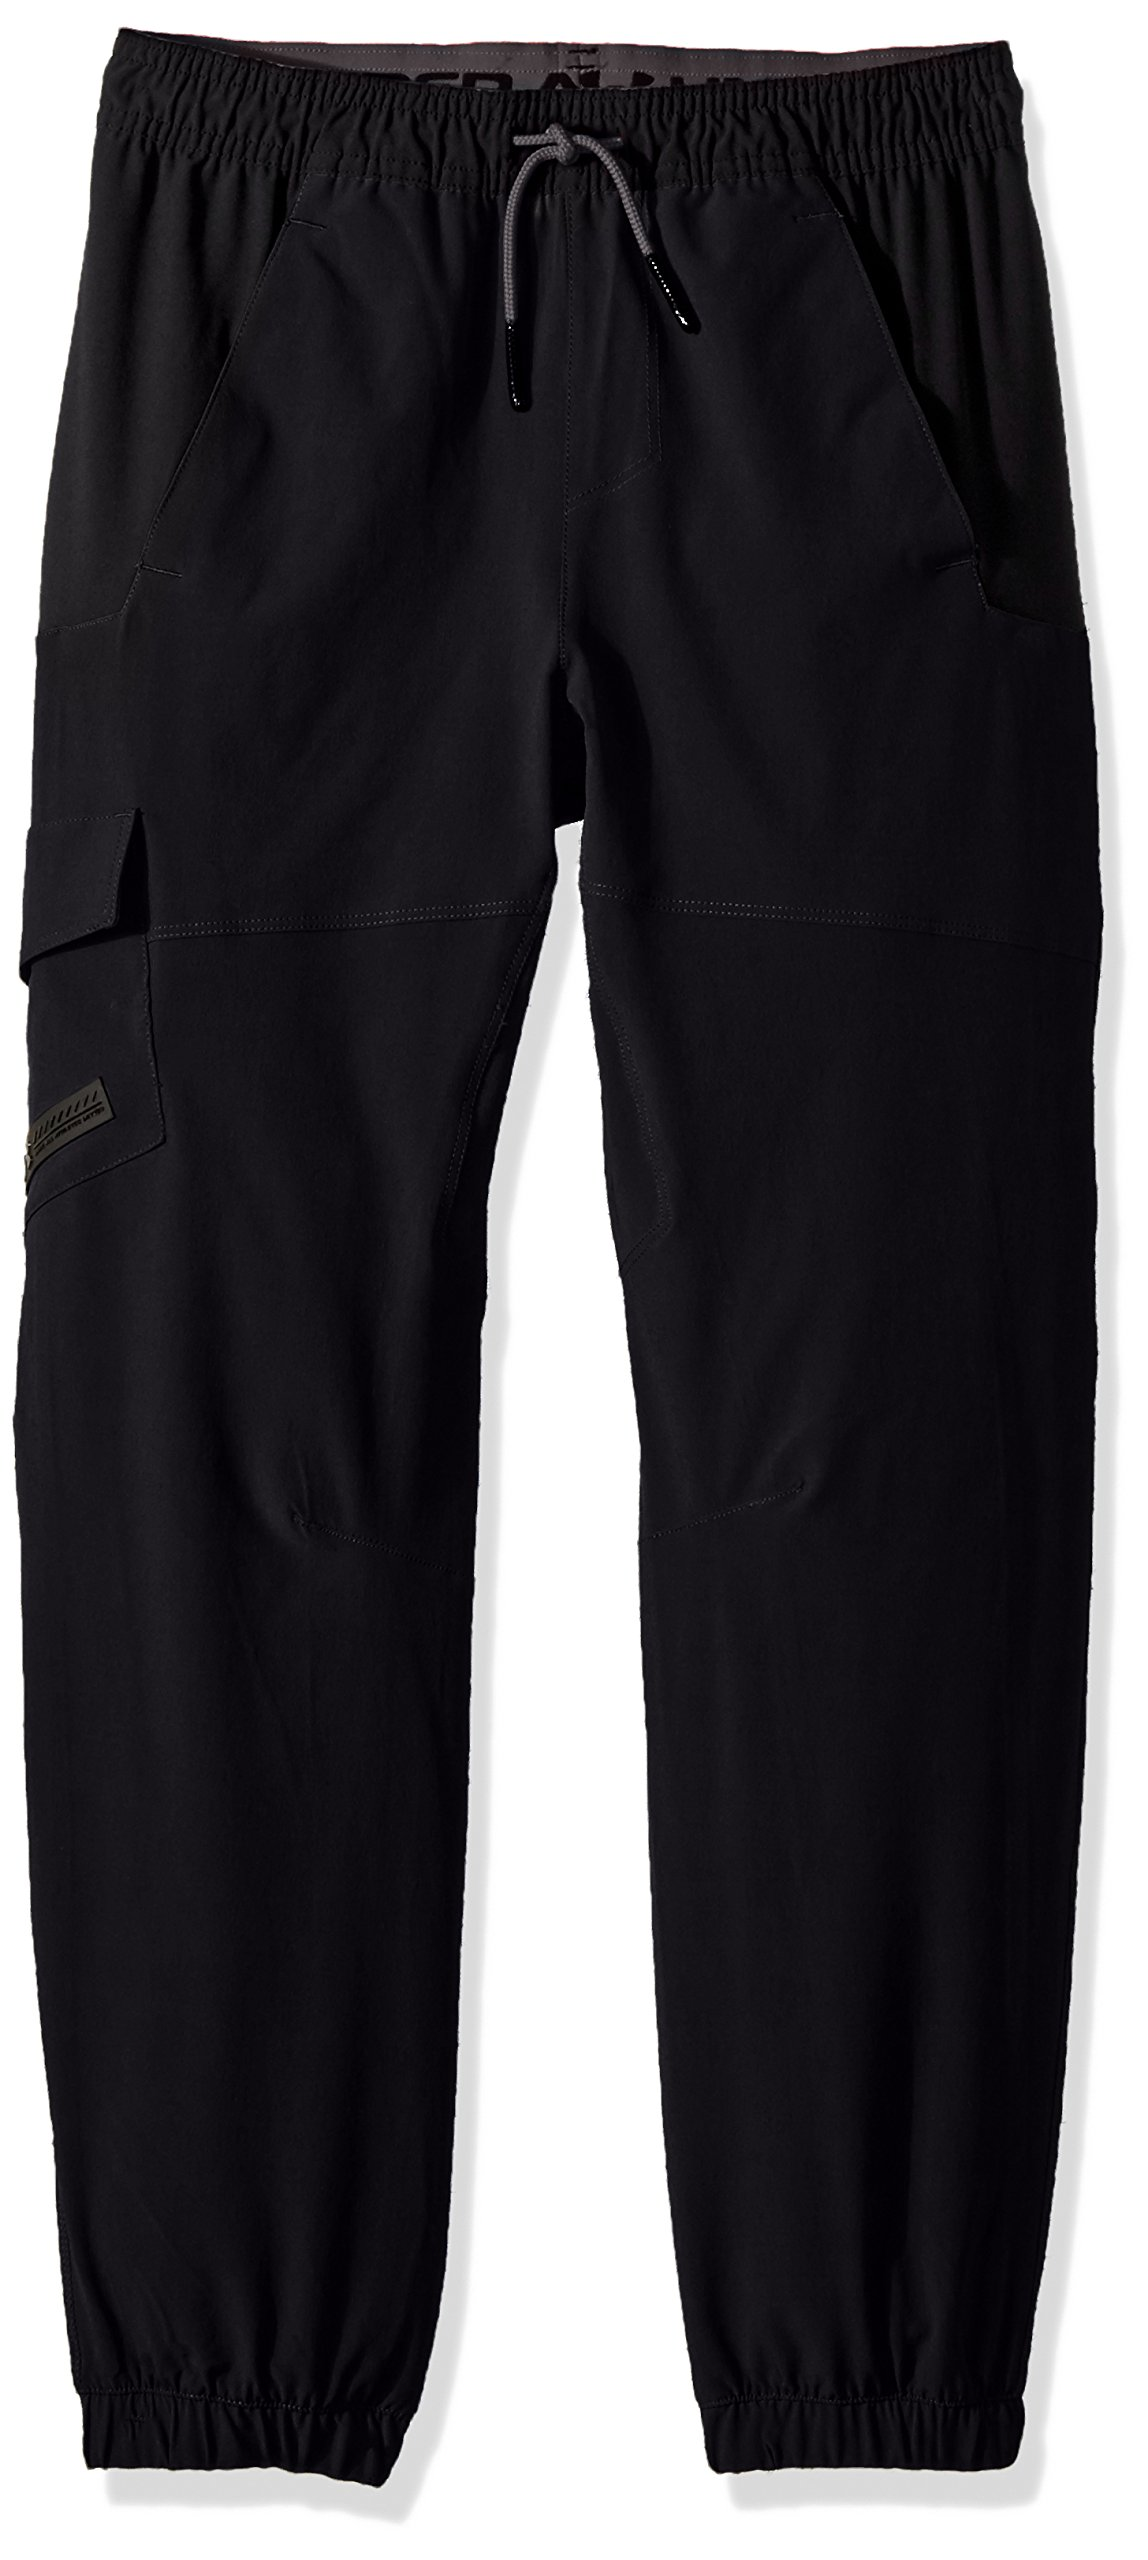 Under Armour Boys' X Level Cargo Pants, Black /Graphite, Youth Small